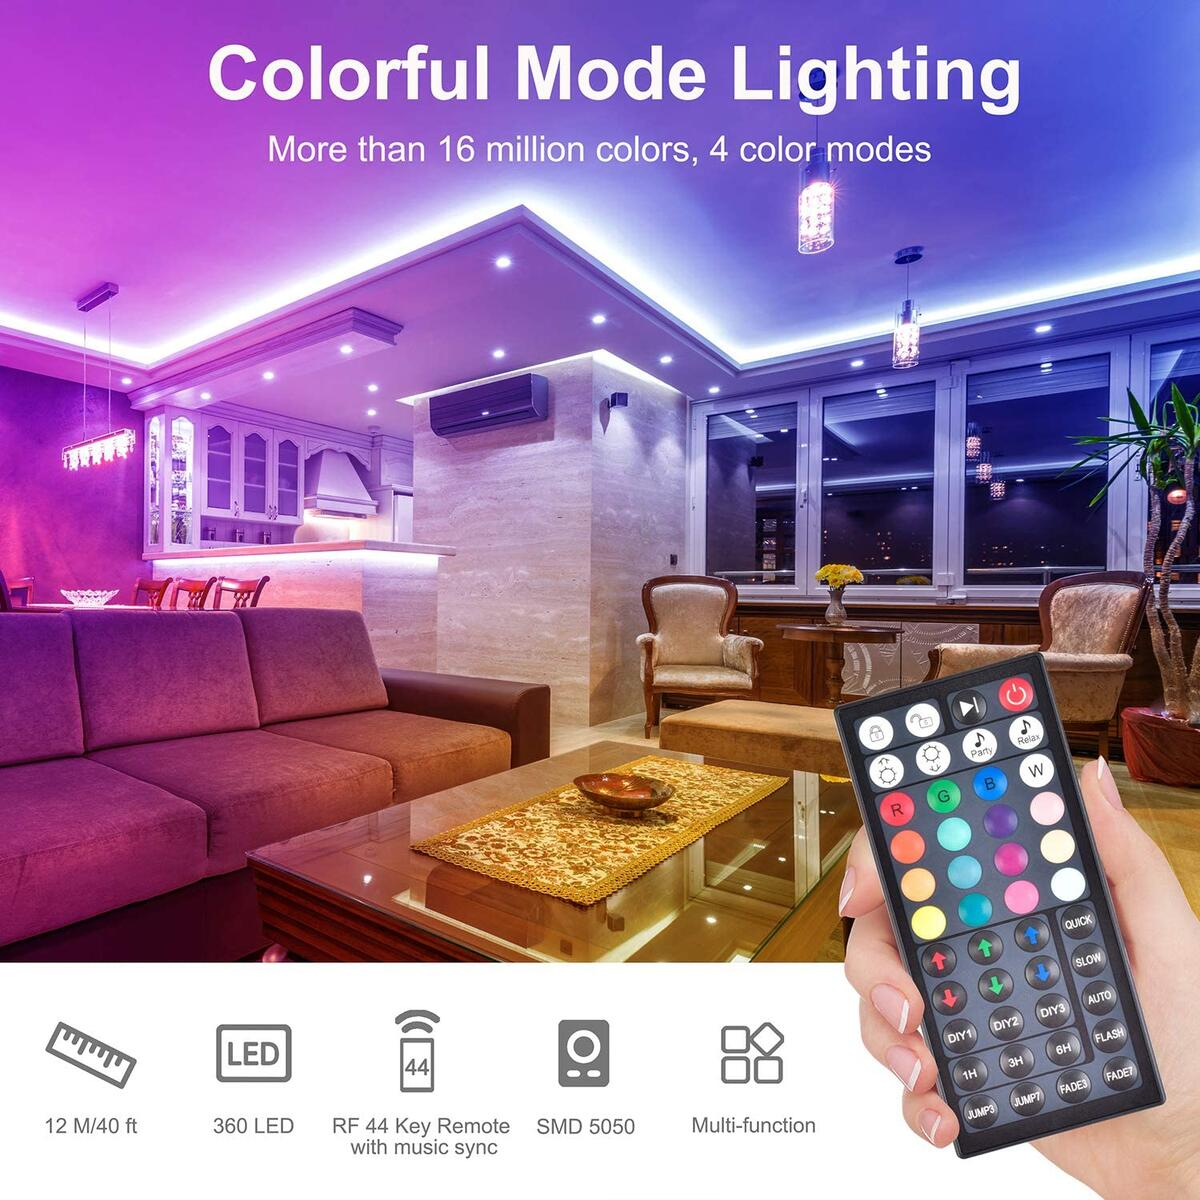 Music Sync LED Strip Light -Wixann 40FT RGB Color Changing Dimmable LED Strip Lights Kits with 44 Key RF Remote, SMD 5050 12V Flexible Led Tape Lights for Bedroom,Living Room,Kitchen TV or Party